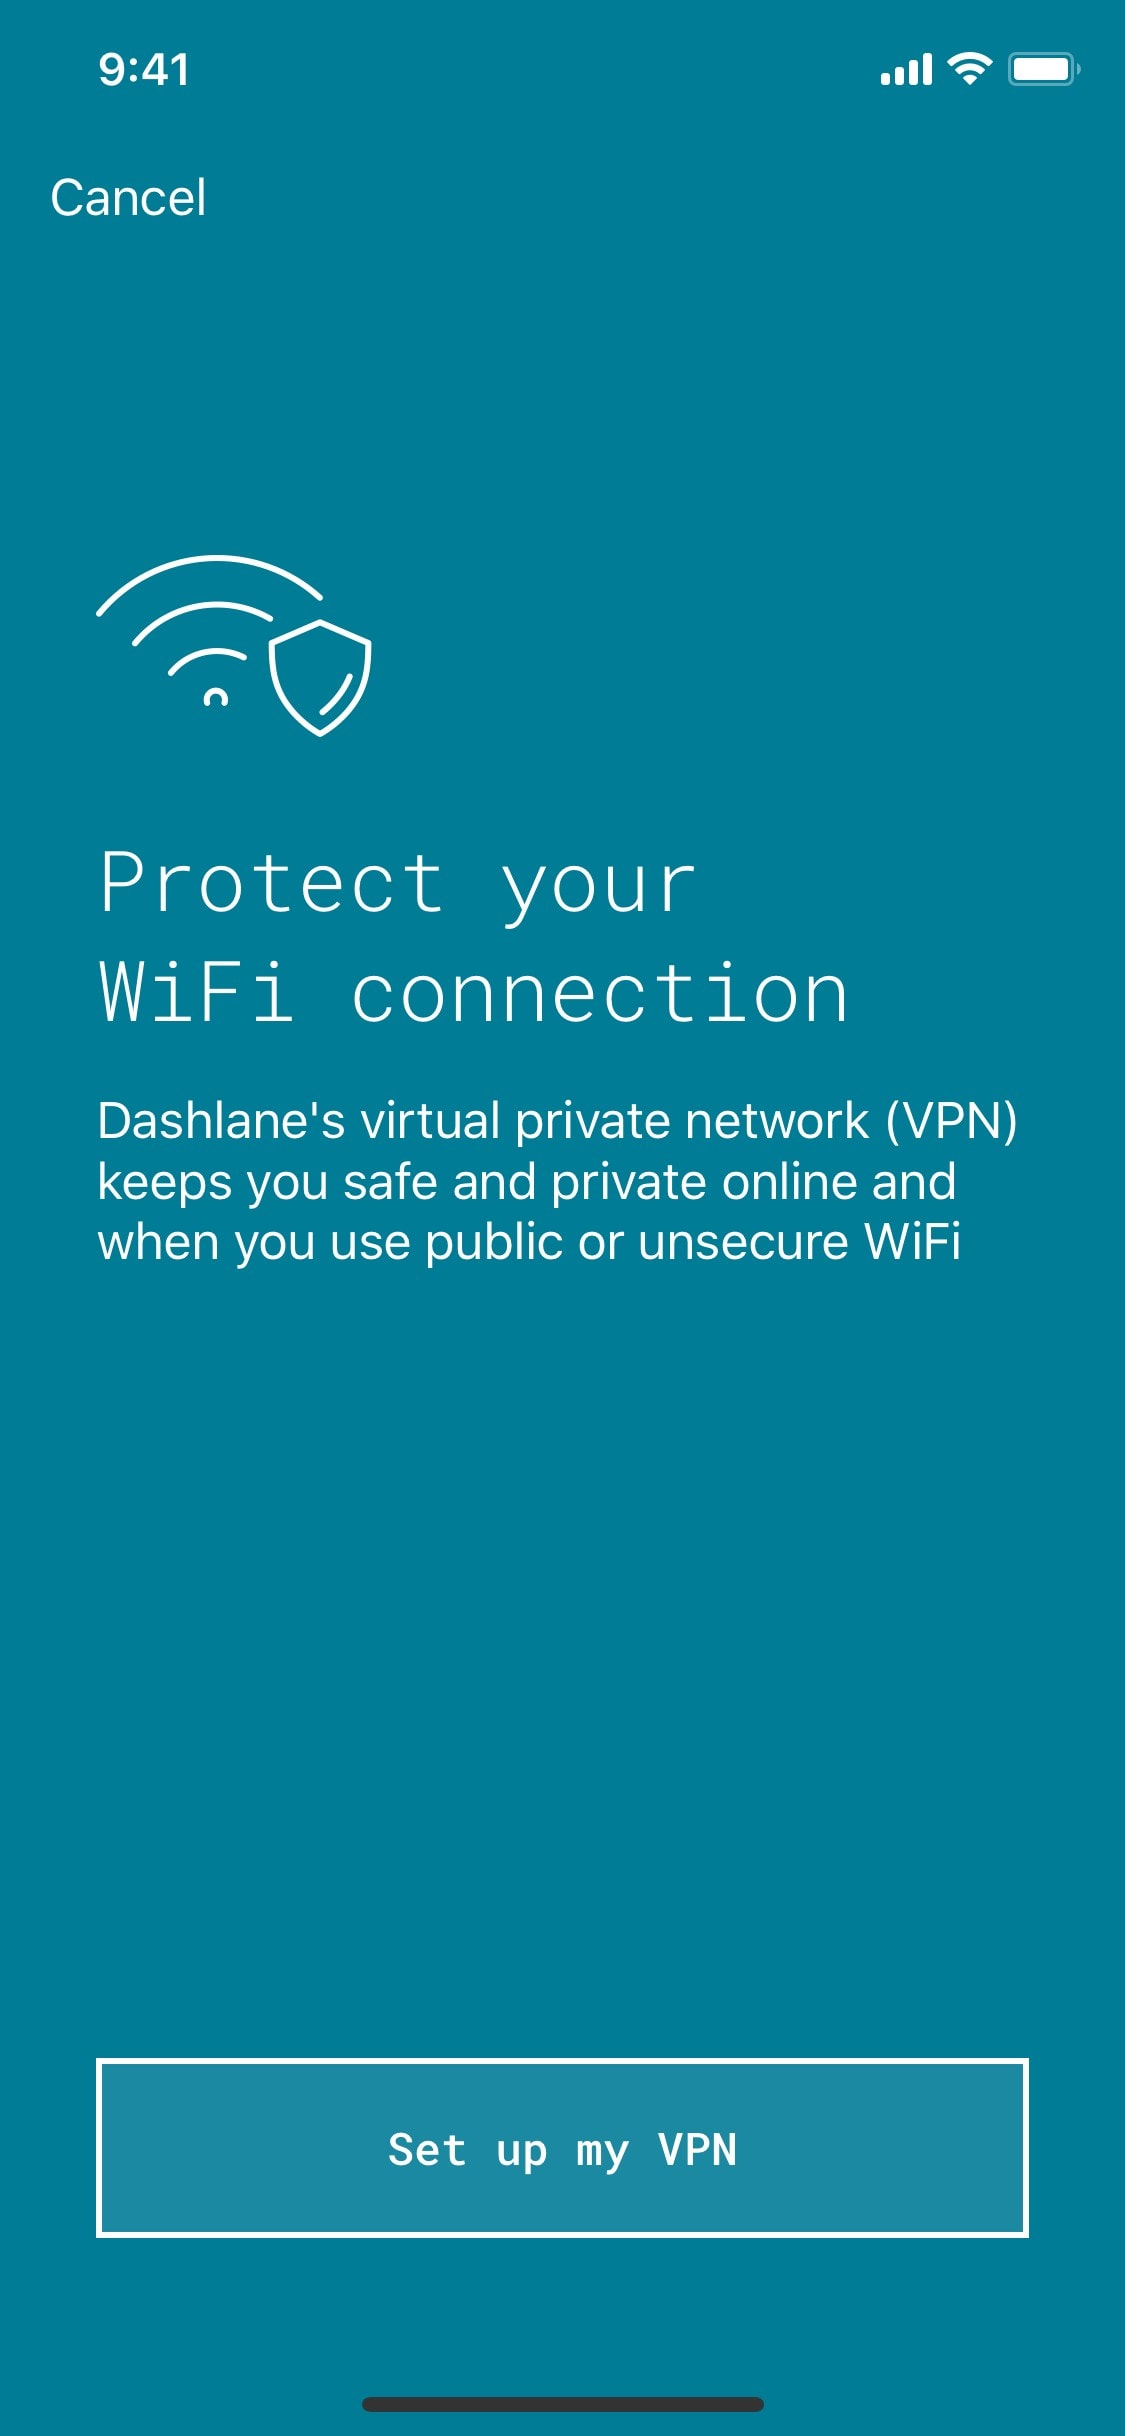 Stay safe on public Wi-Fi with Dashlane VPN on iOS.